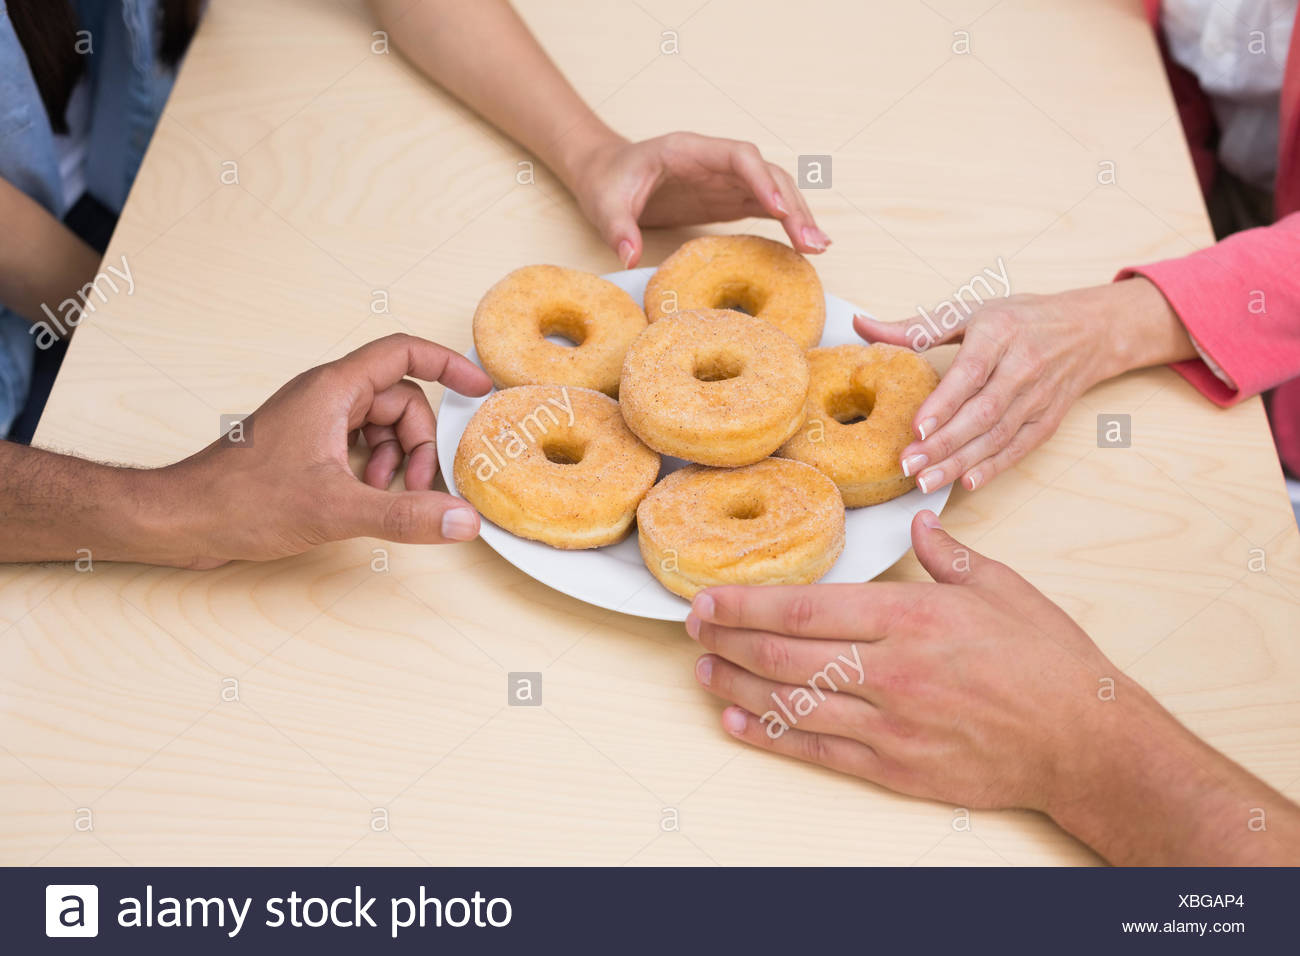 Business team reaching for doughnuts on table - Stock Image